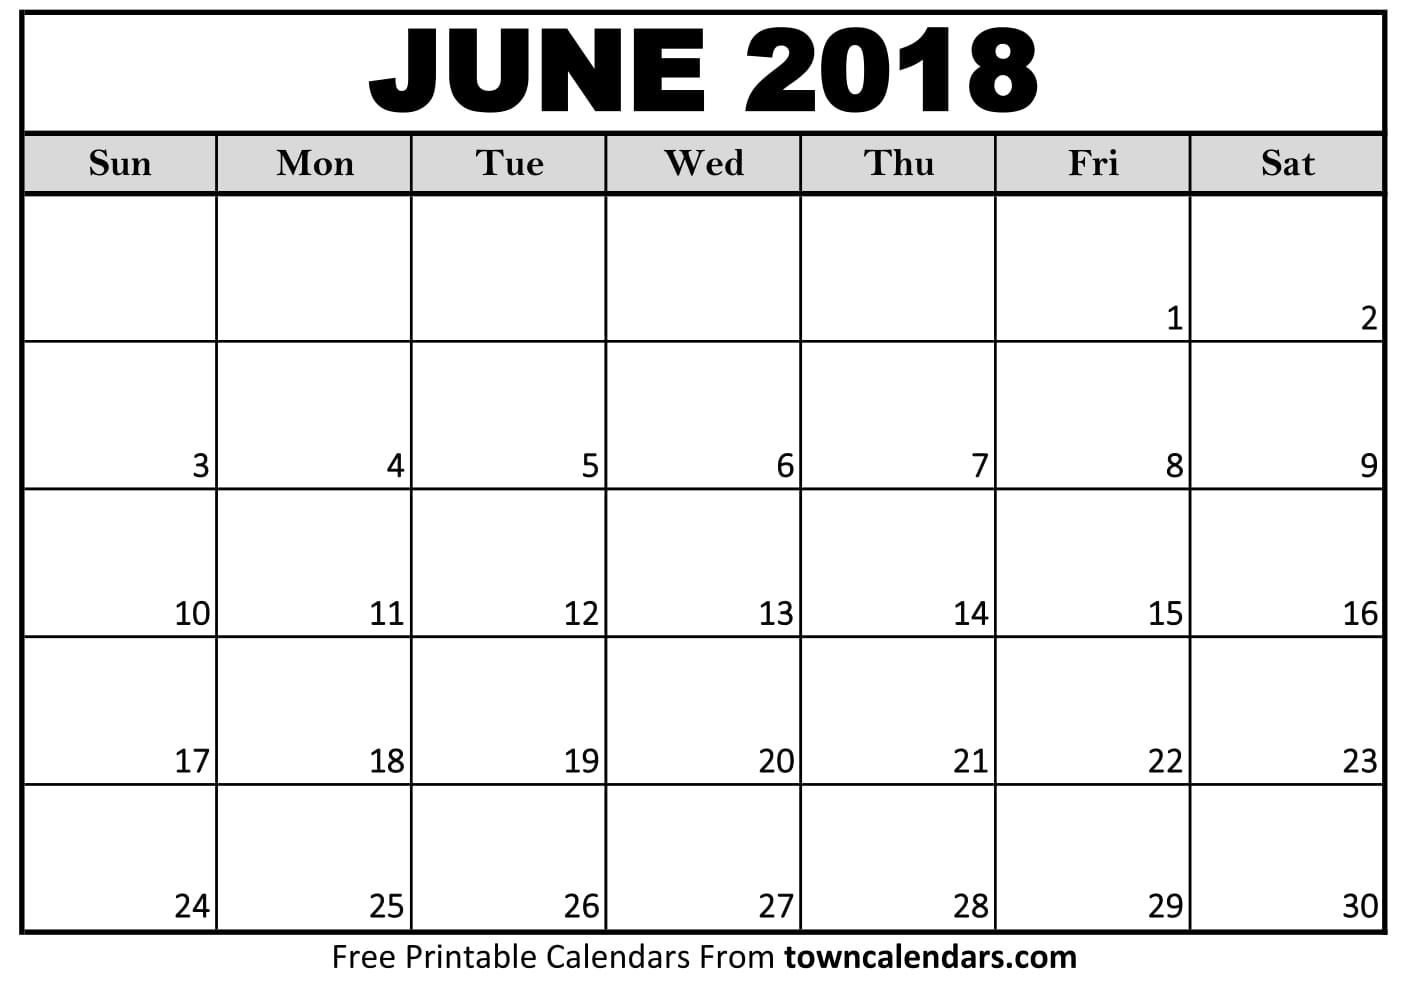 Calendar Template June : Free june calendar printable template source